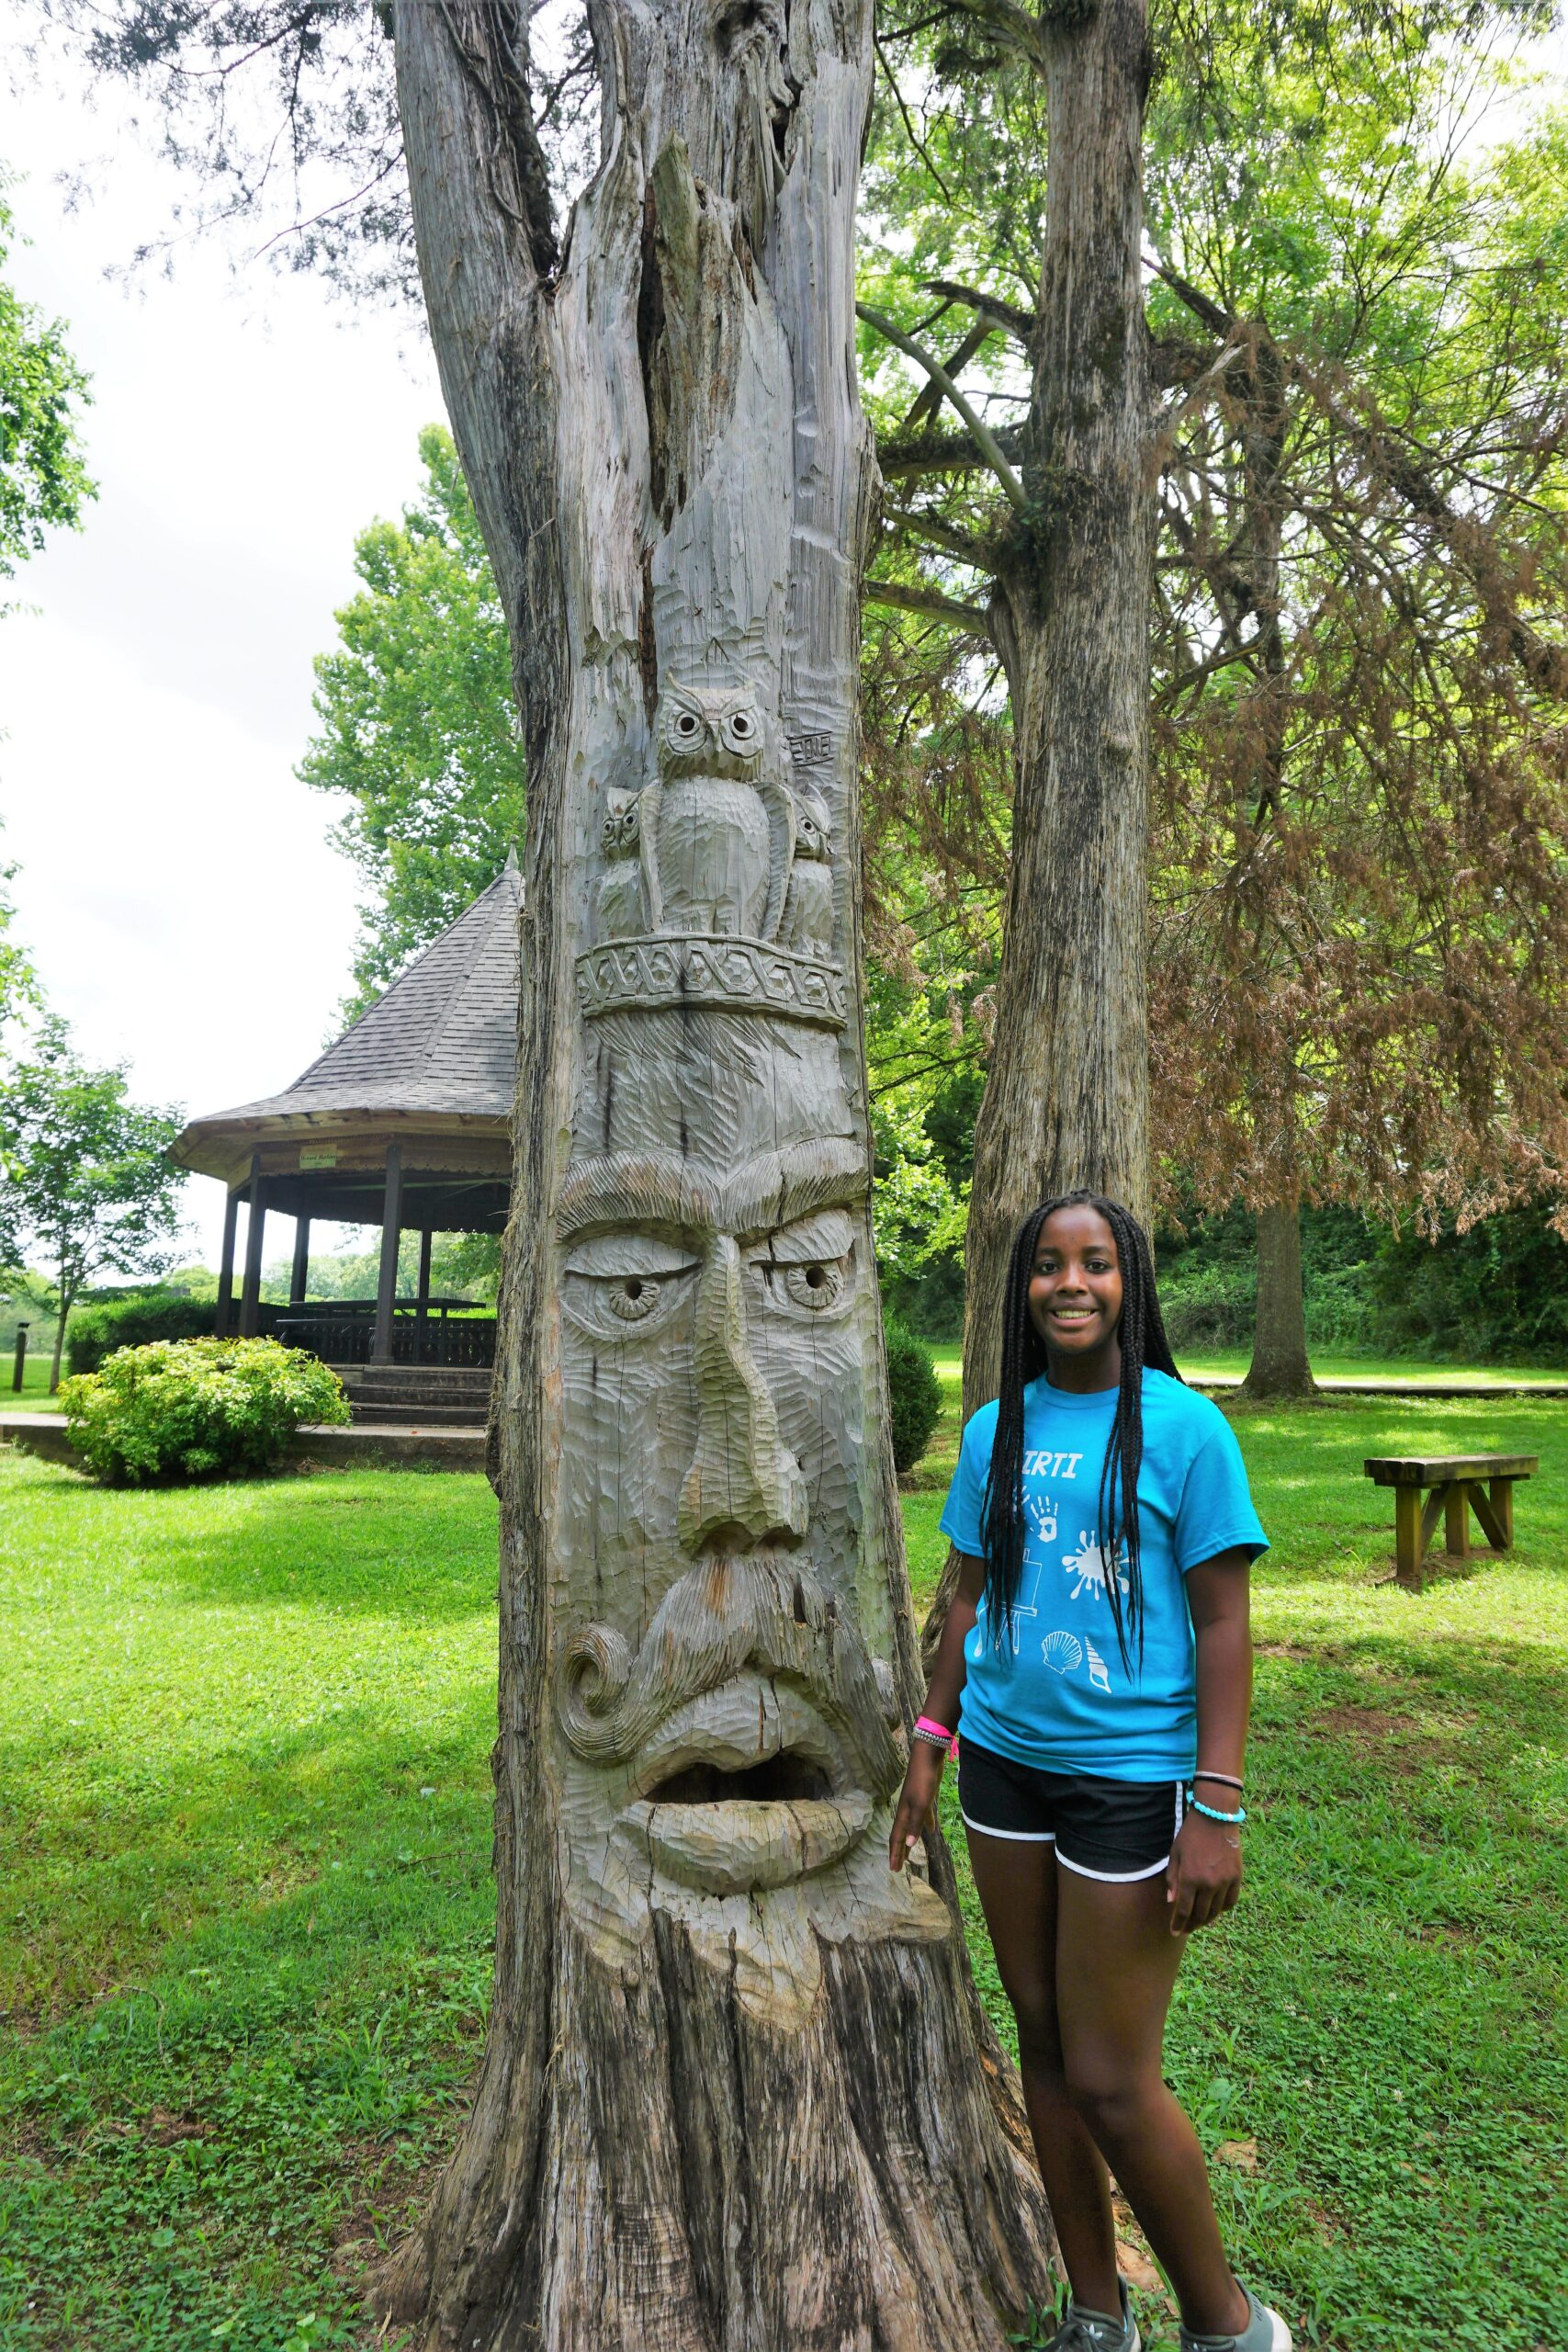 cousin camp ideas - cousin posing with an t.ree carving in a park